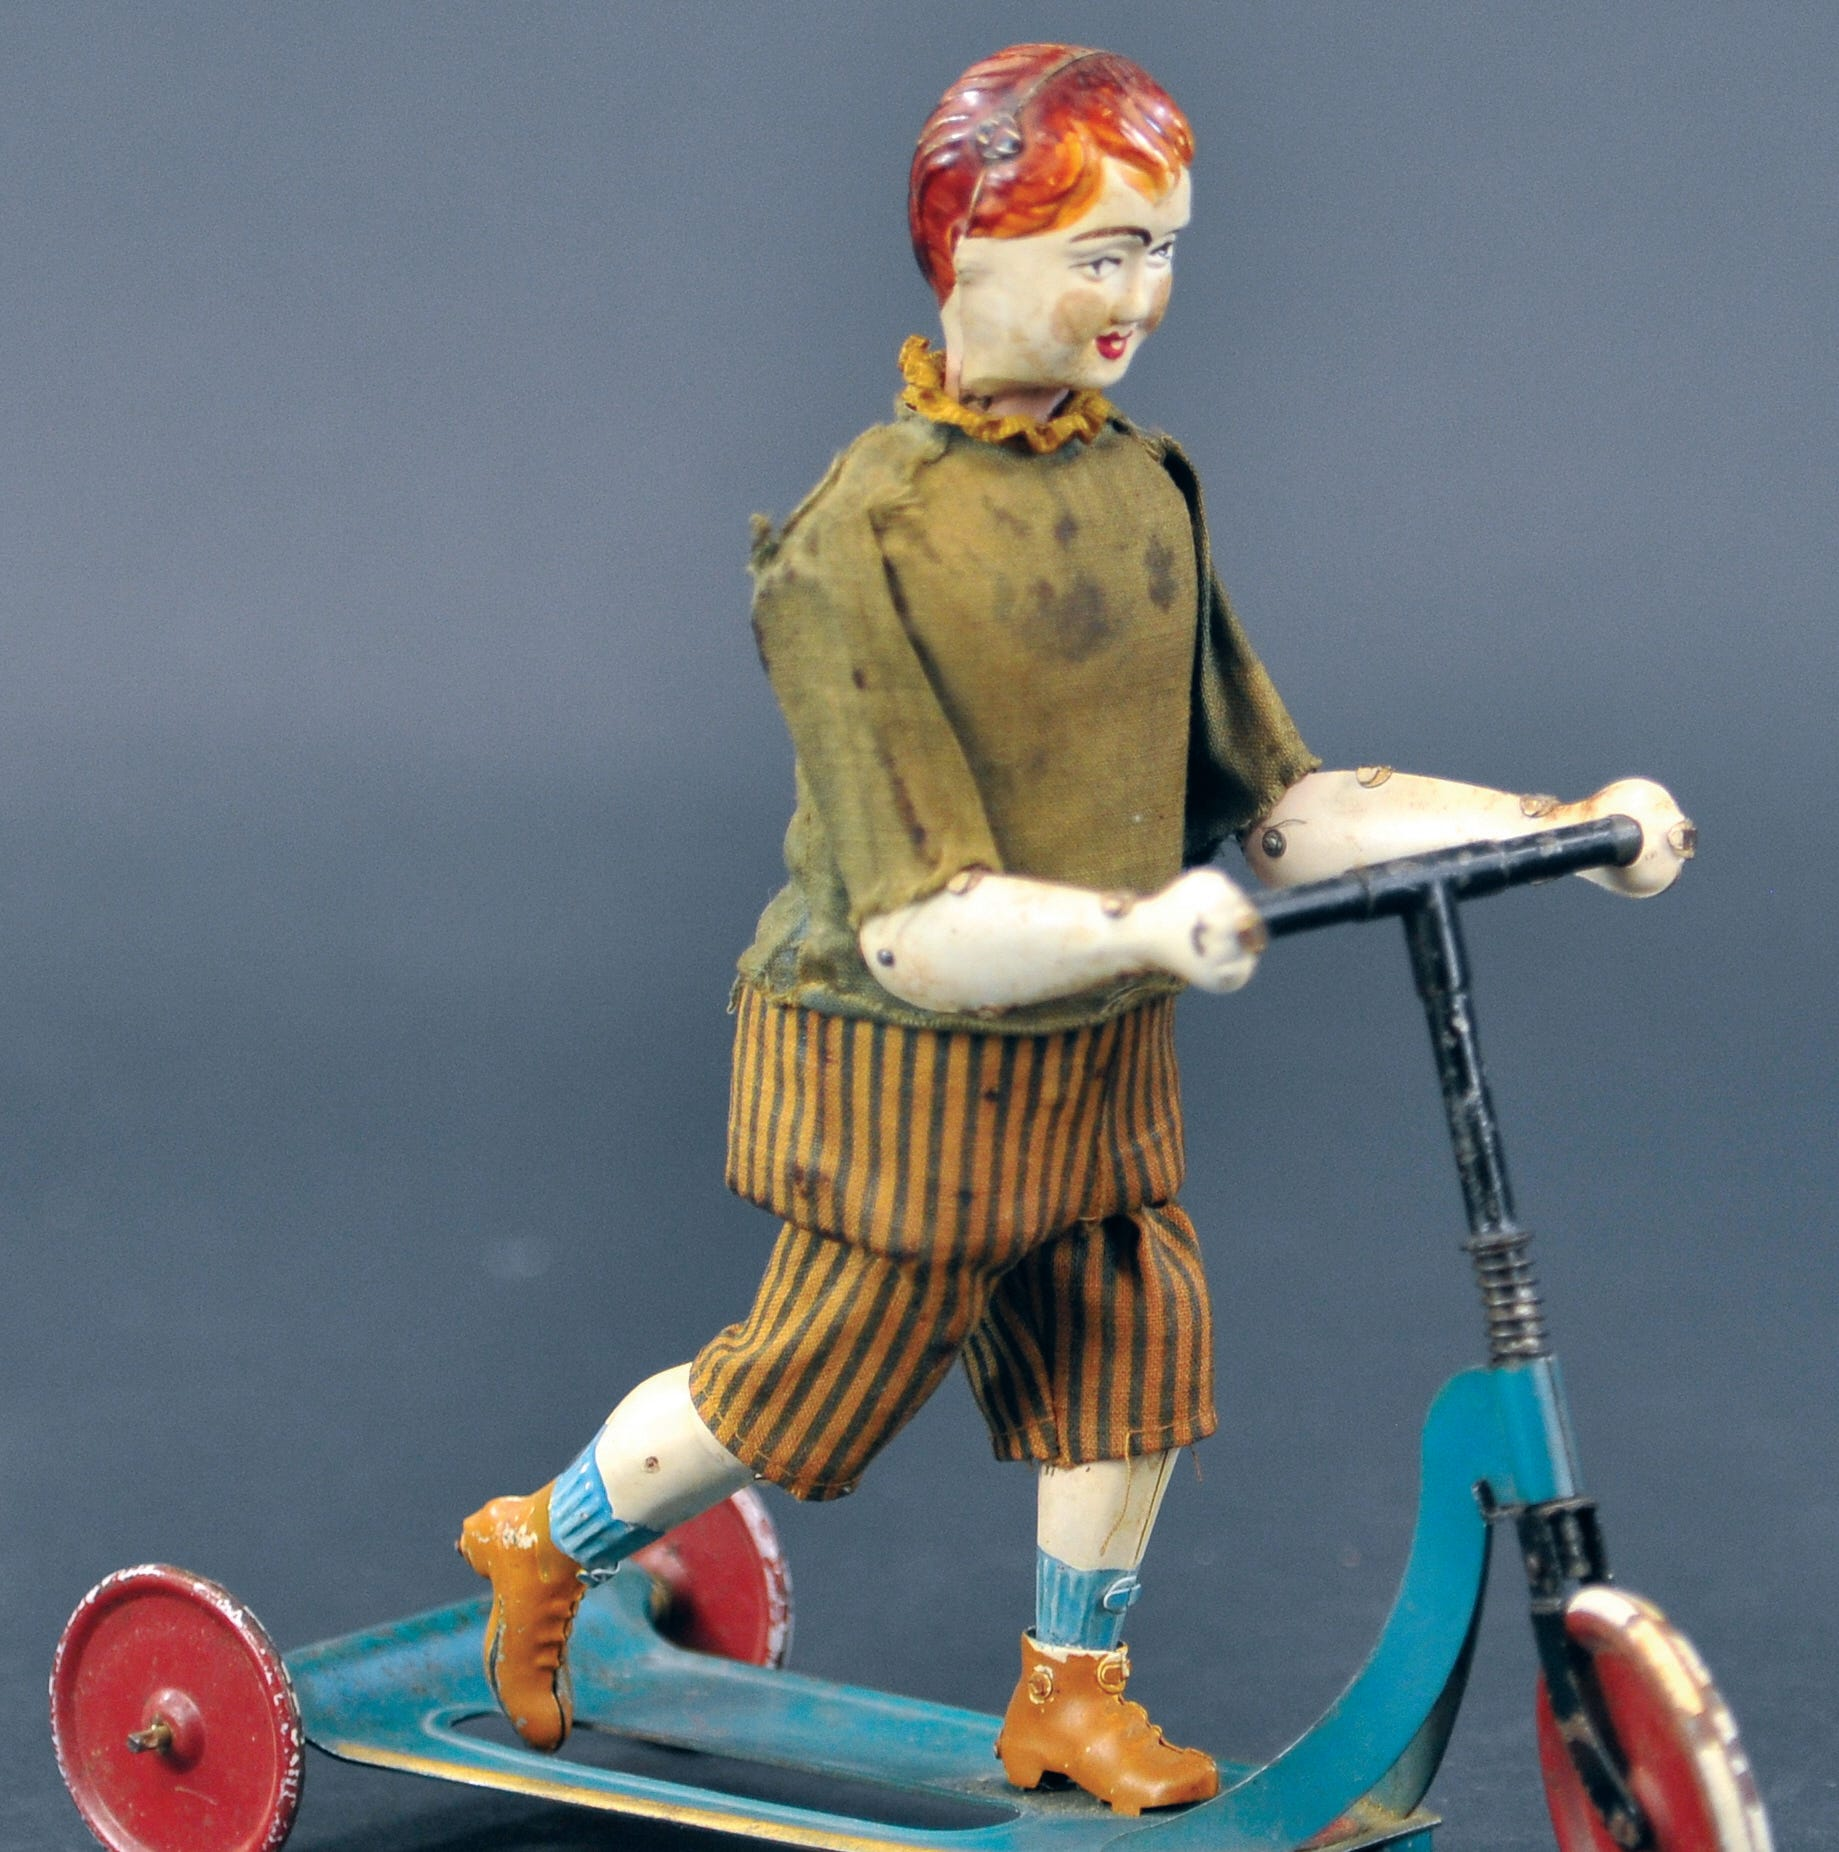 Antique toy brings big money at auction